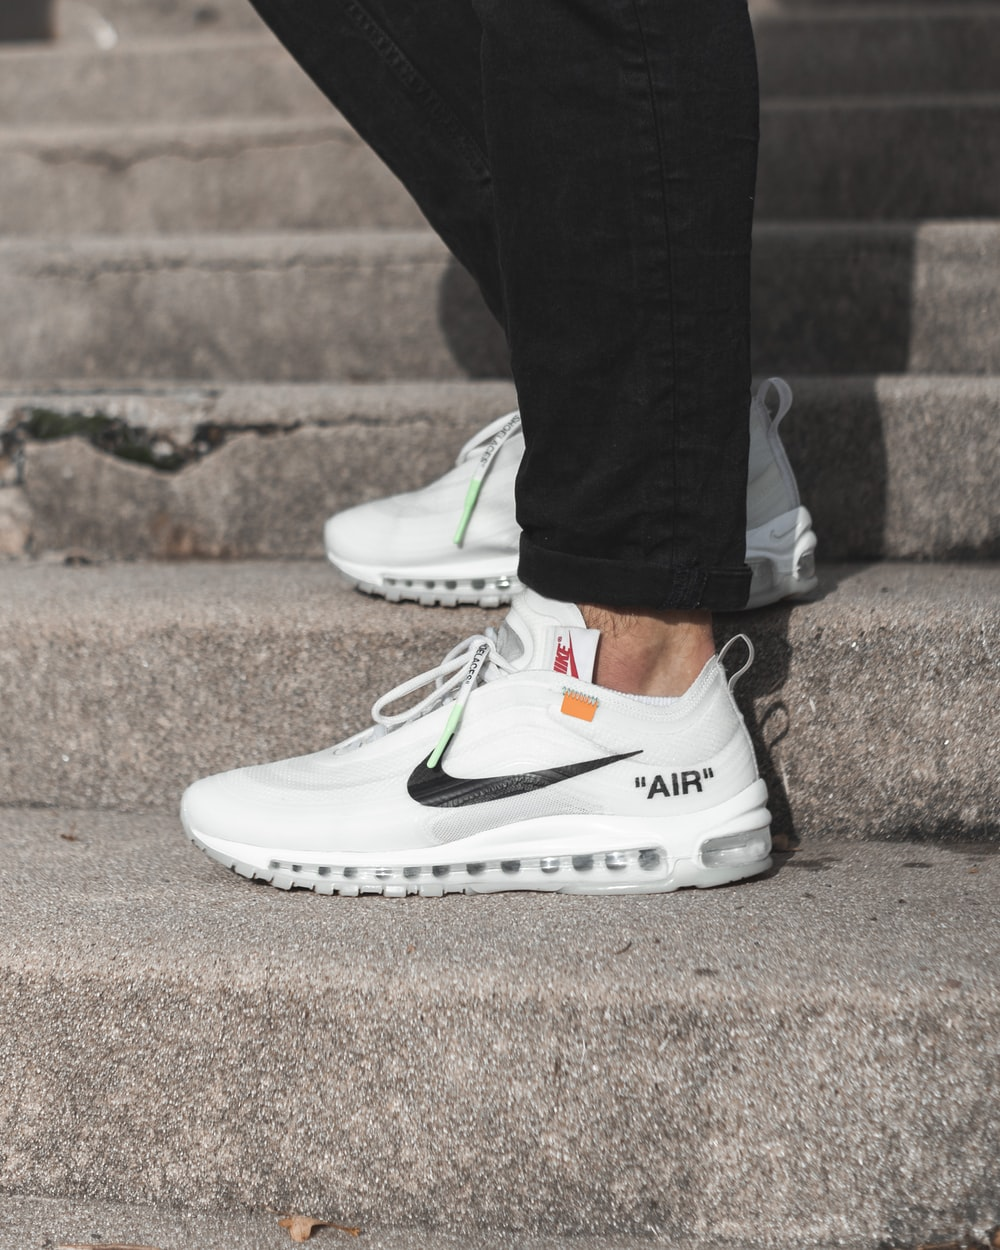 white-and-black Nike shoes